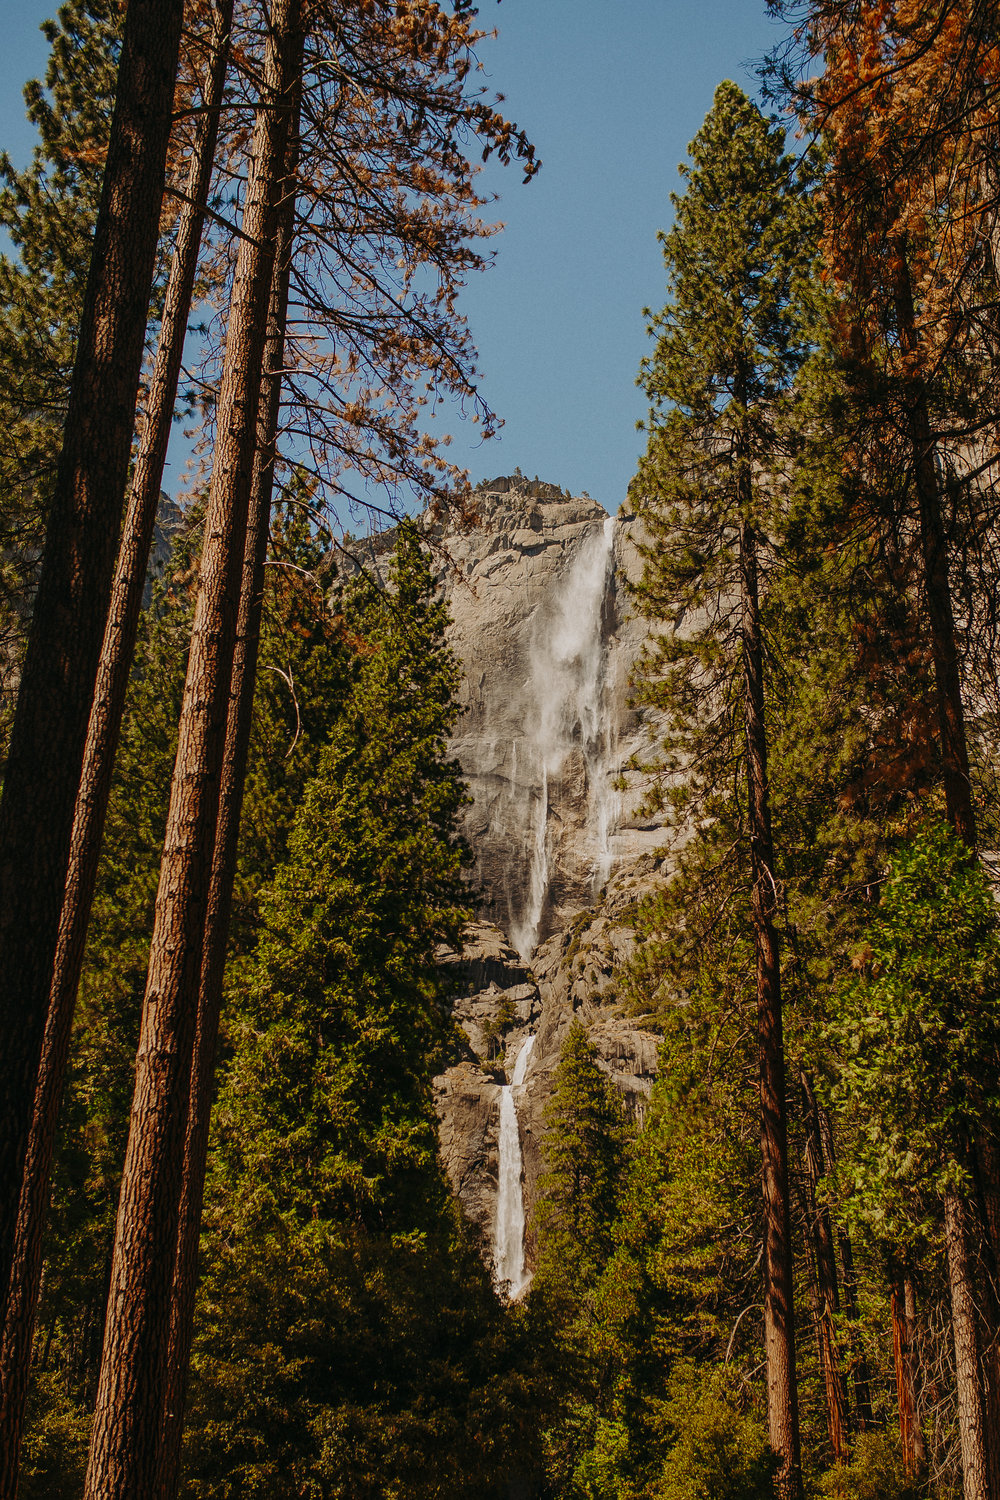 Visit-Yosemite-National-Park-Pictures-California-10.jpg